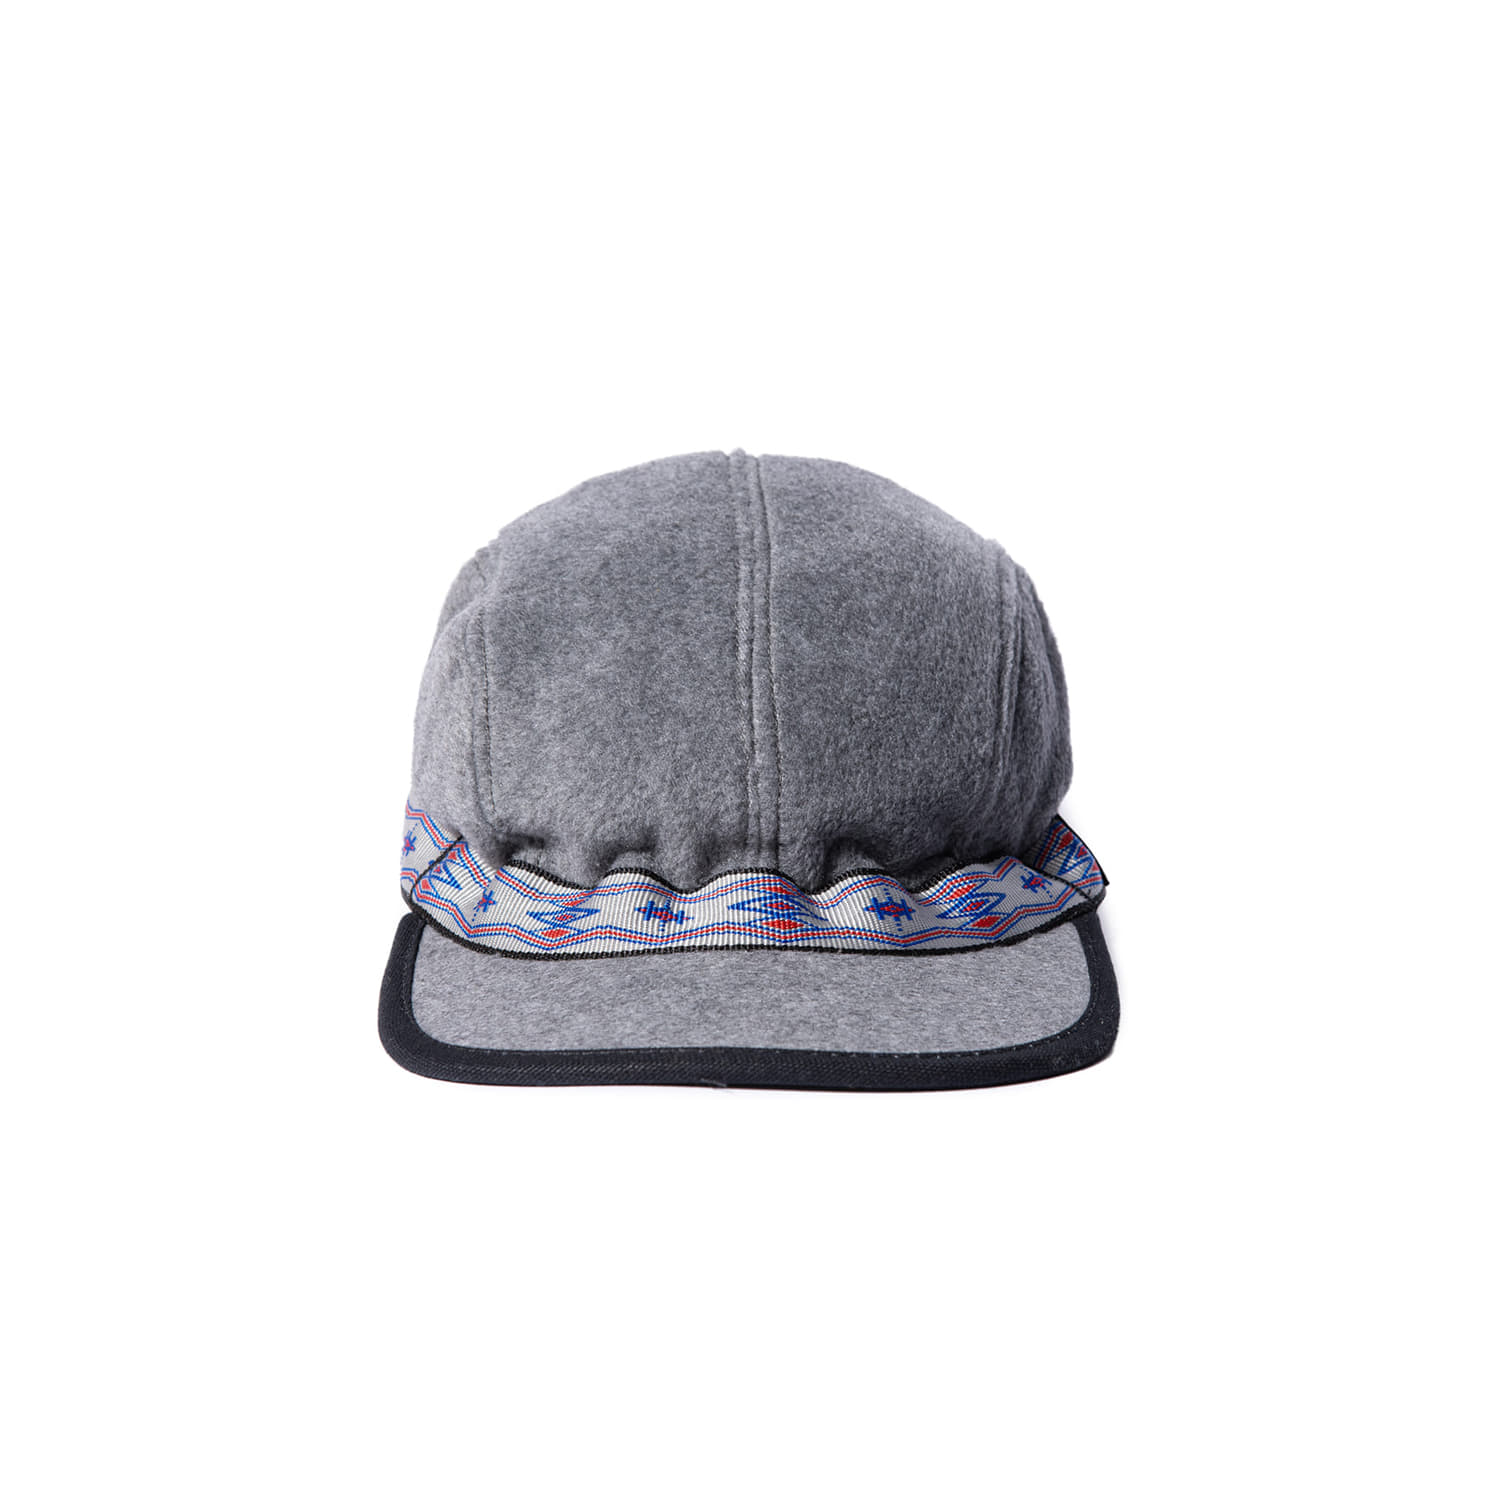 "Fleece Strap cap ""CHARCOAL HEATHER"""